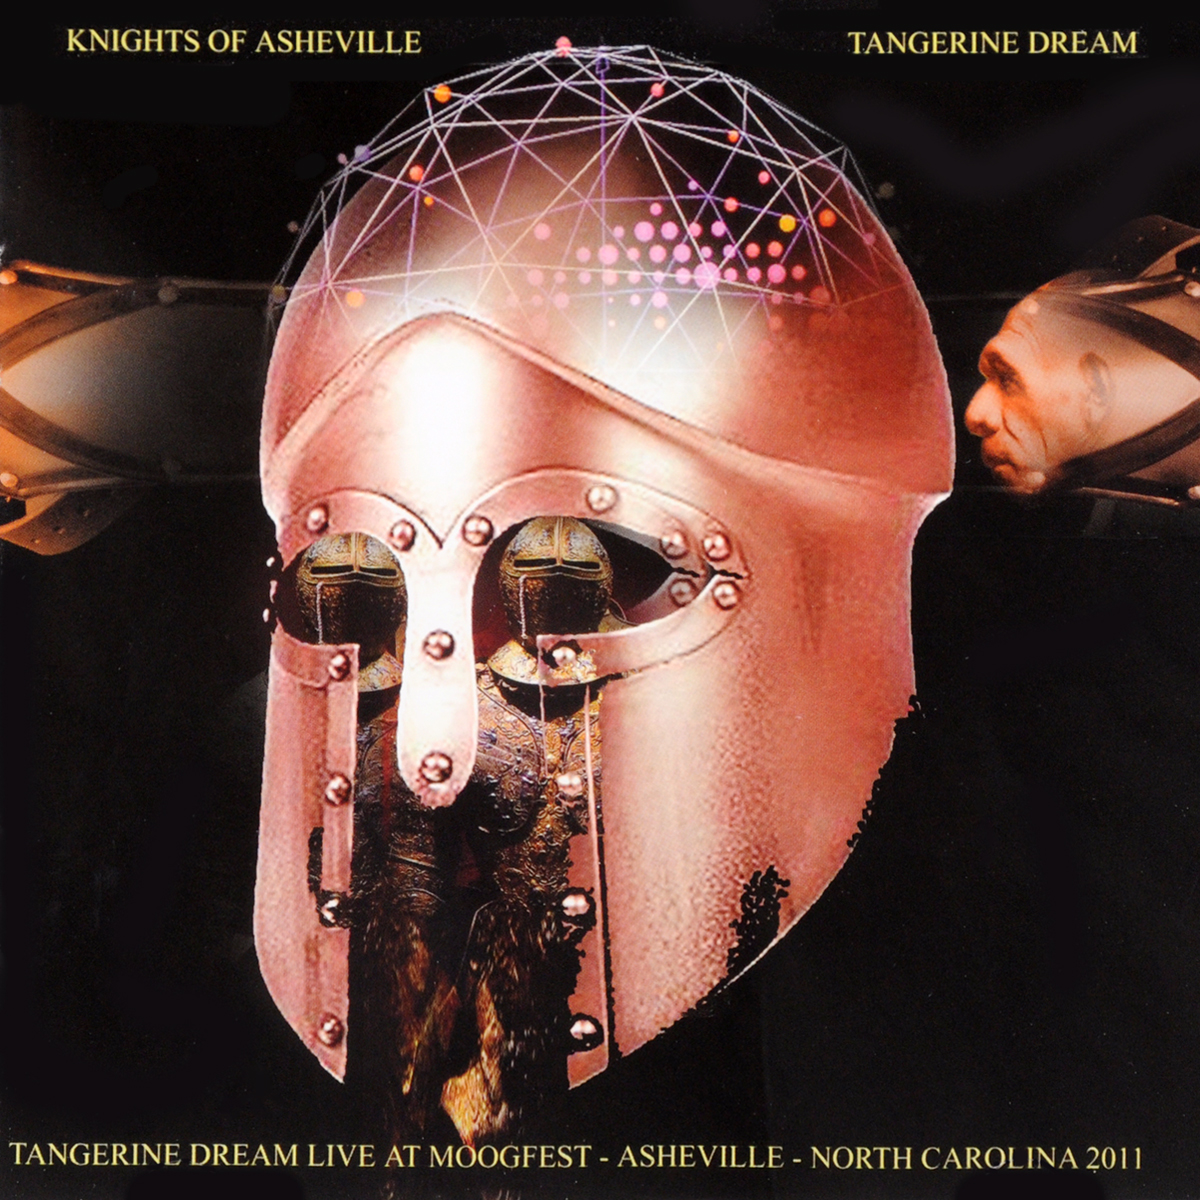 Tangerine Dream Tangerine Dream. Knights Of Asheville - Tangerine Dream Live At The Moogfest In Asheville 2011 (2 CD) dream evil dream evil the book of heavy metal lp cd